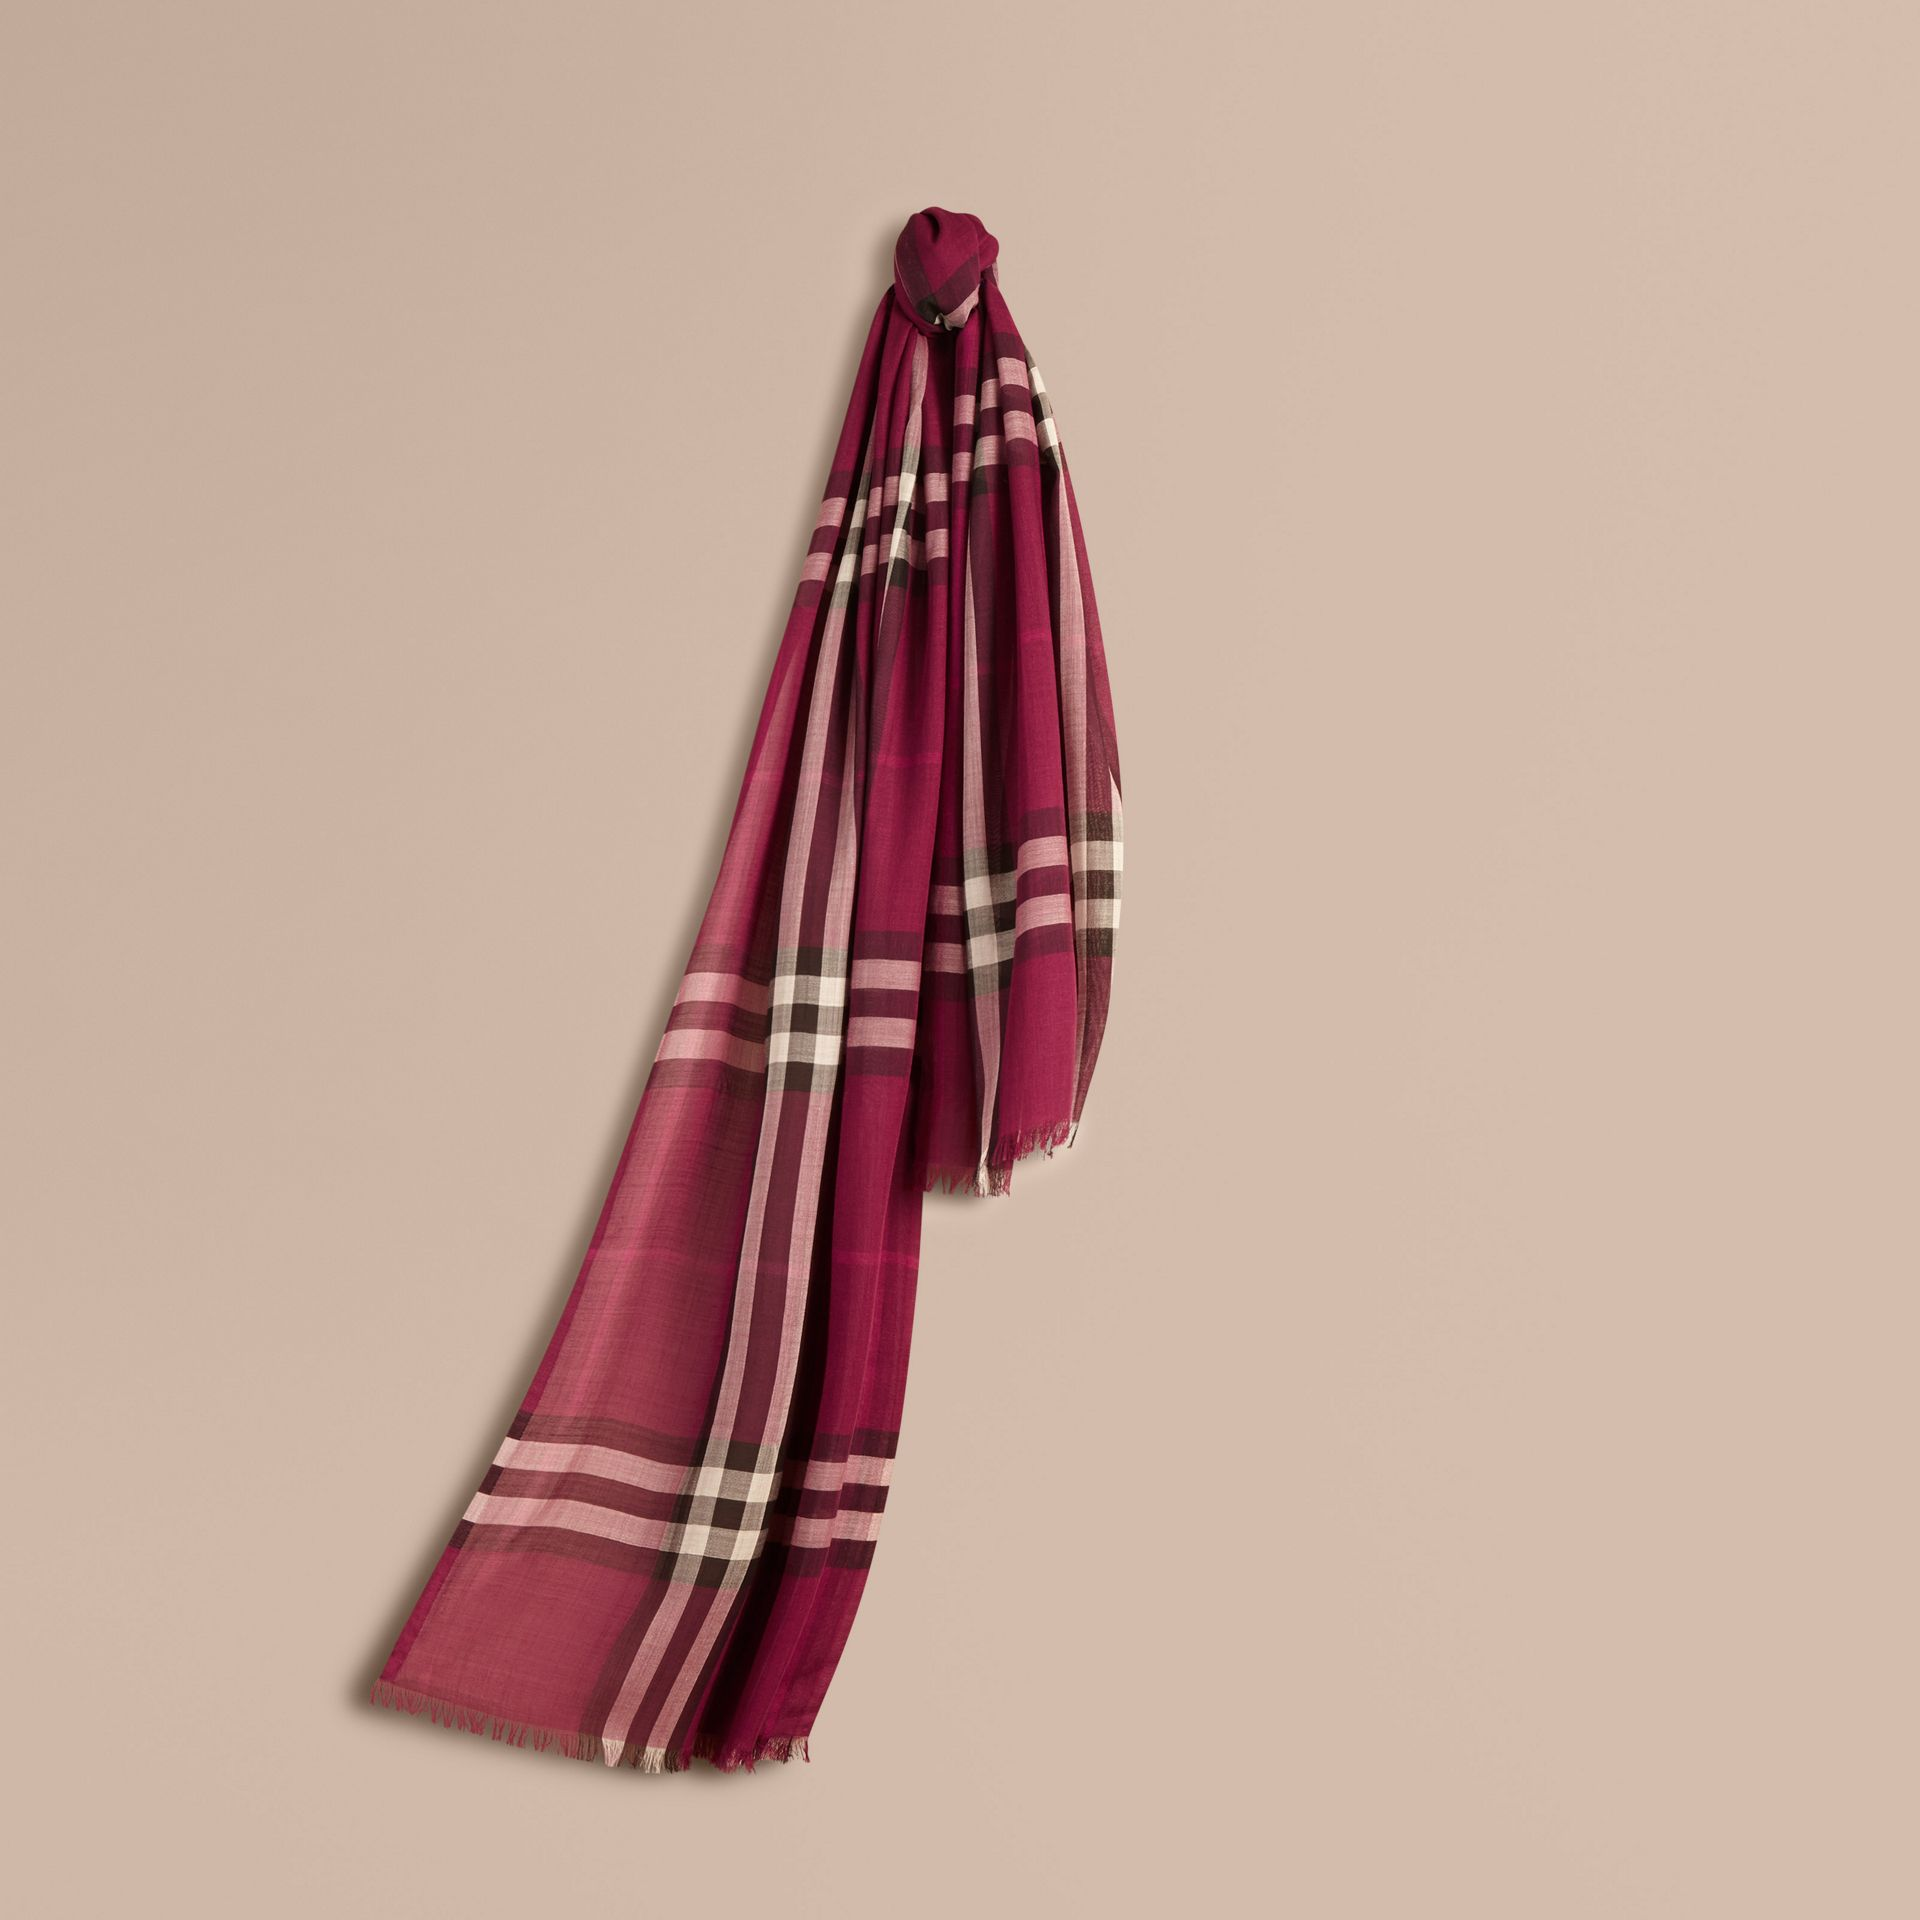 Plum check Lightweight Check Wool and Silk Scarf Plum - gallery image 1